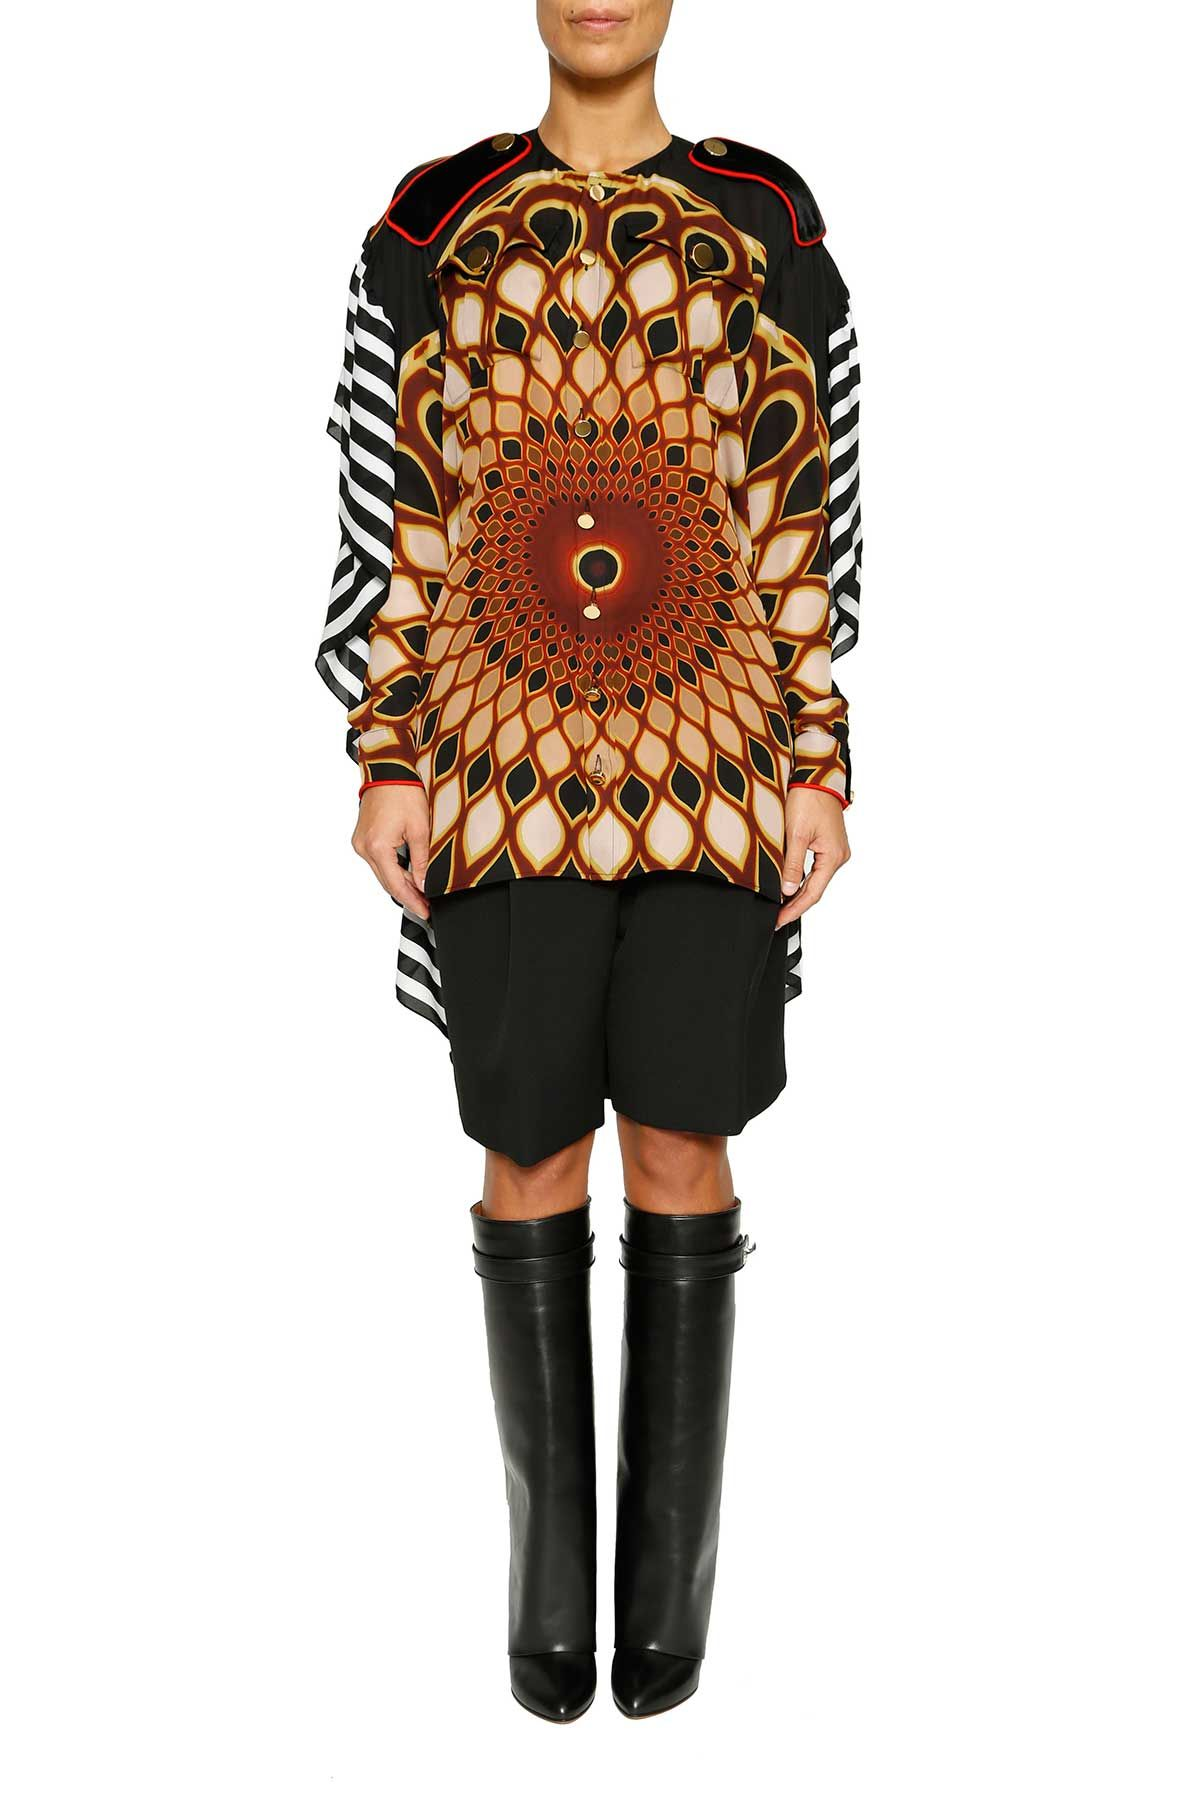 Givenchy kaleido Eye Printed Long Top